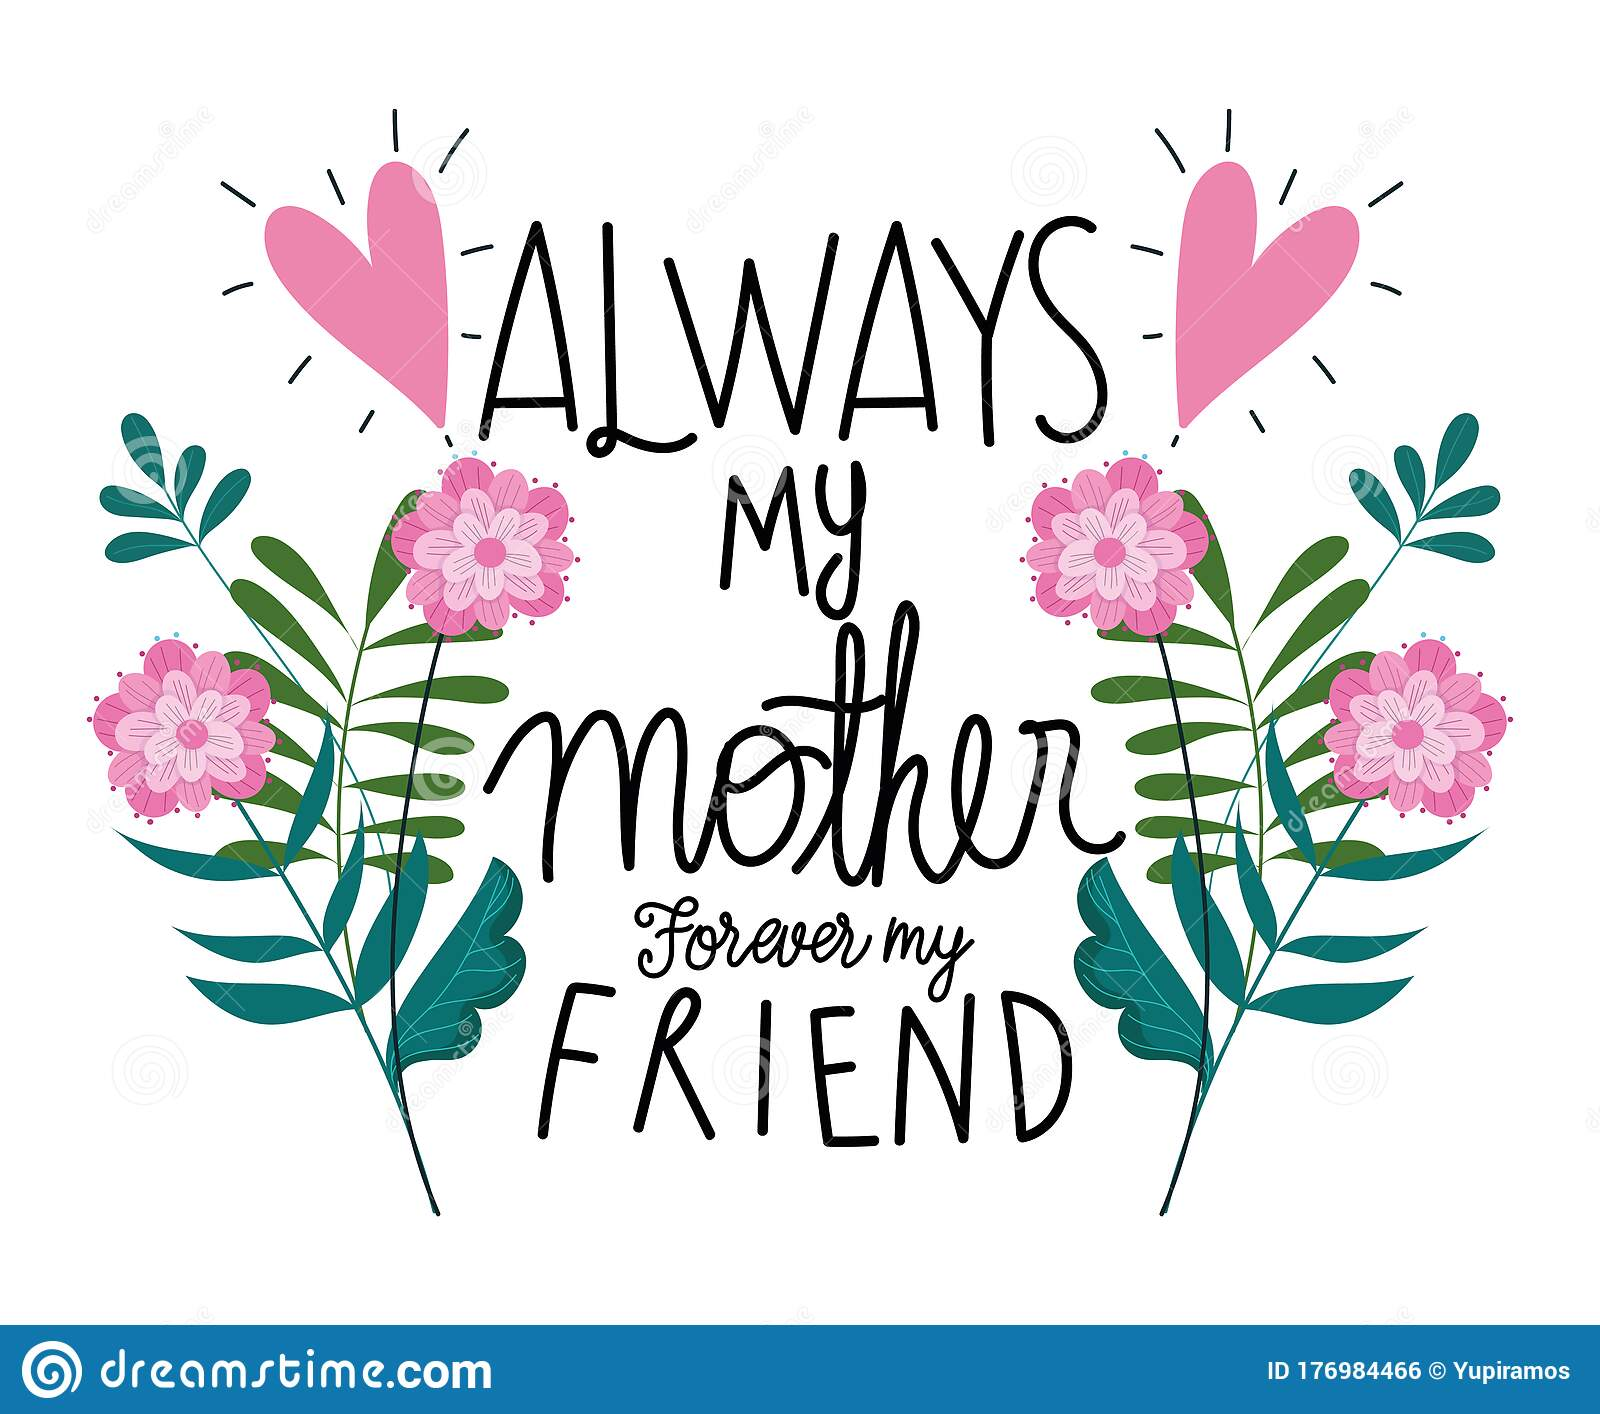 Happy Mothers Day Always My Mother Forever My Friend Flowers Card